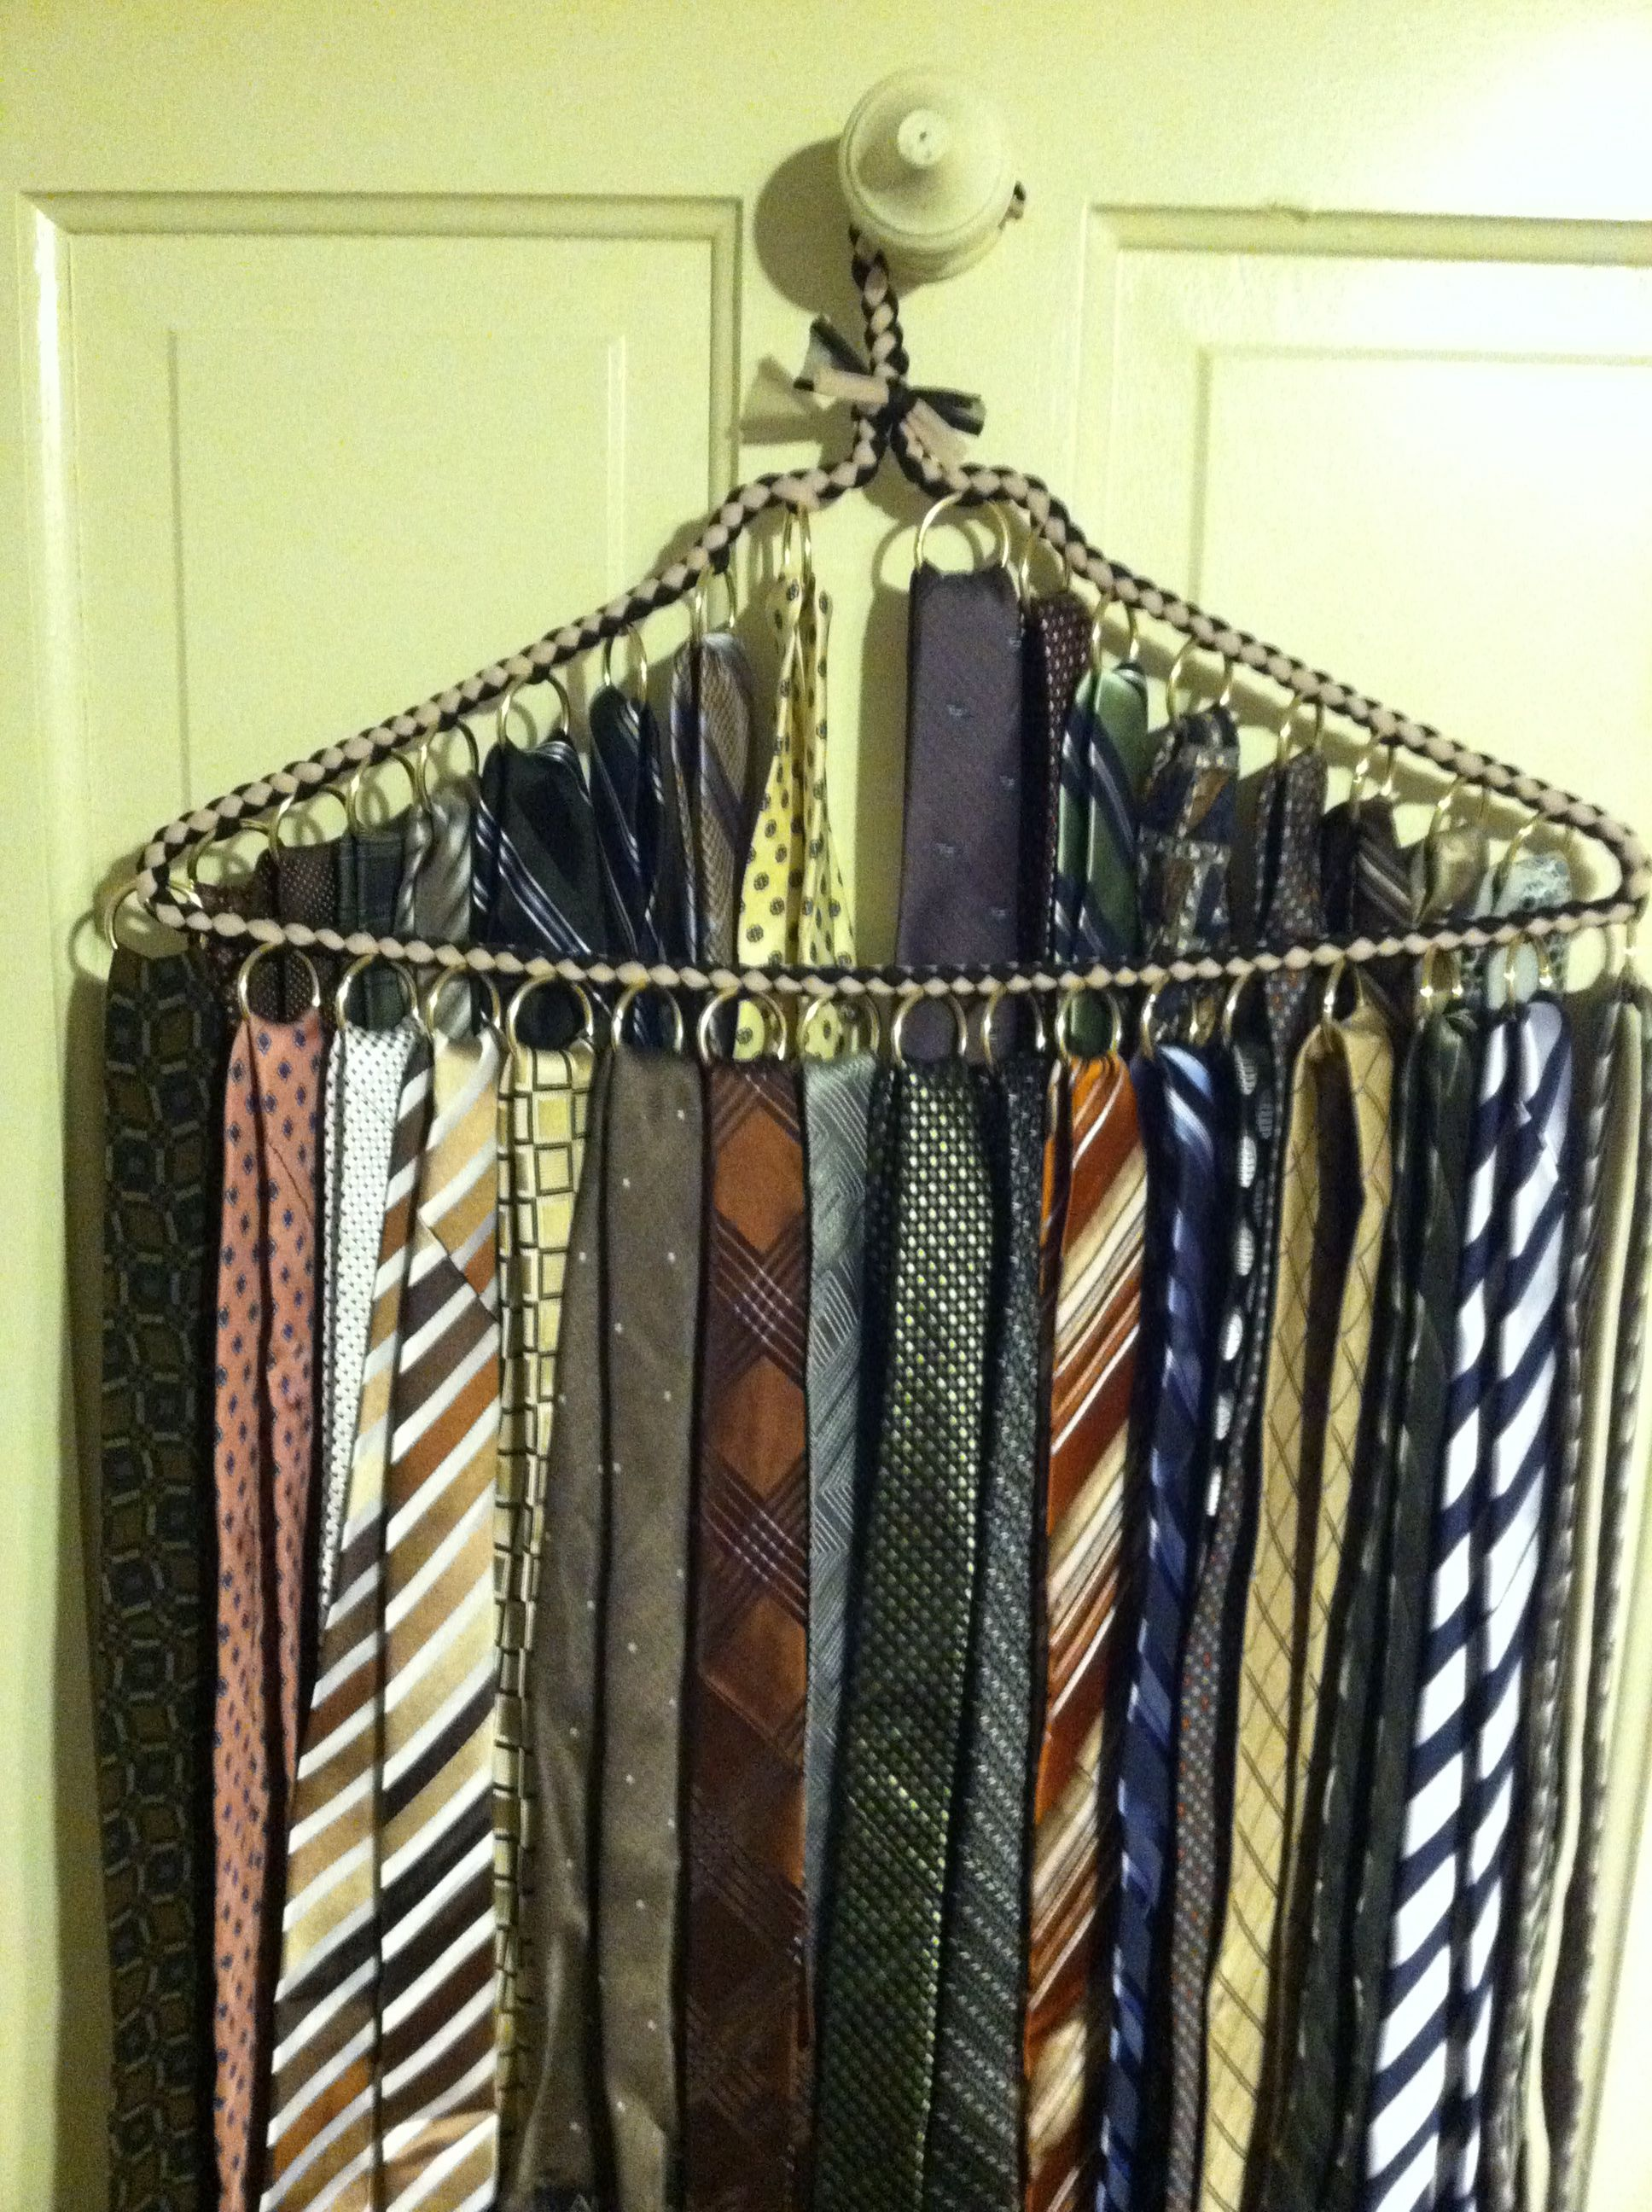 Make A Tie Hanger By Adding Curtain Rings To Your Hanger